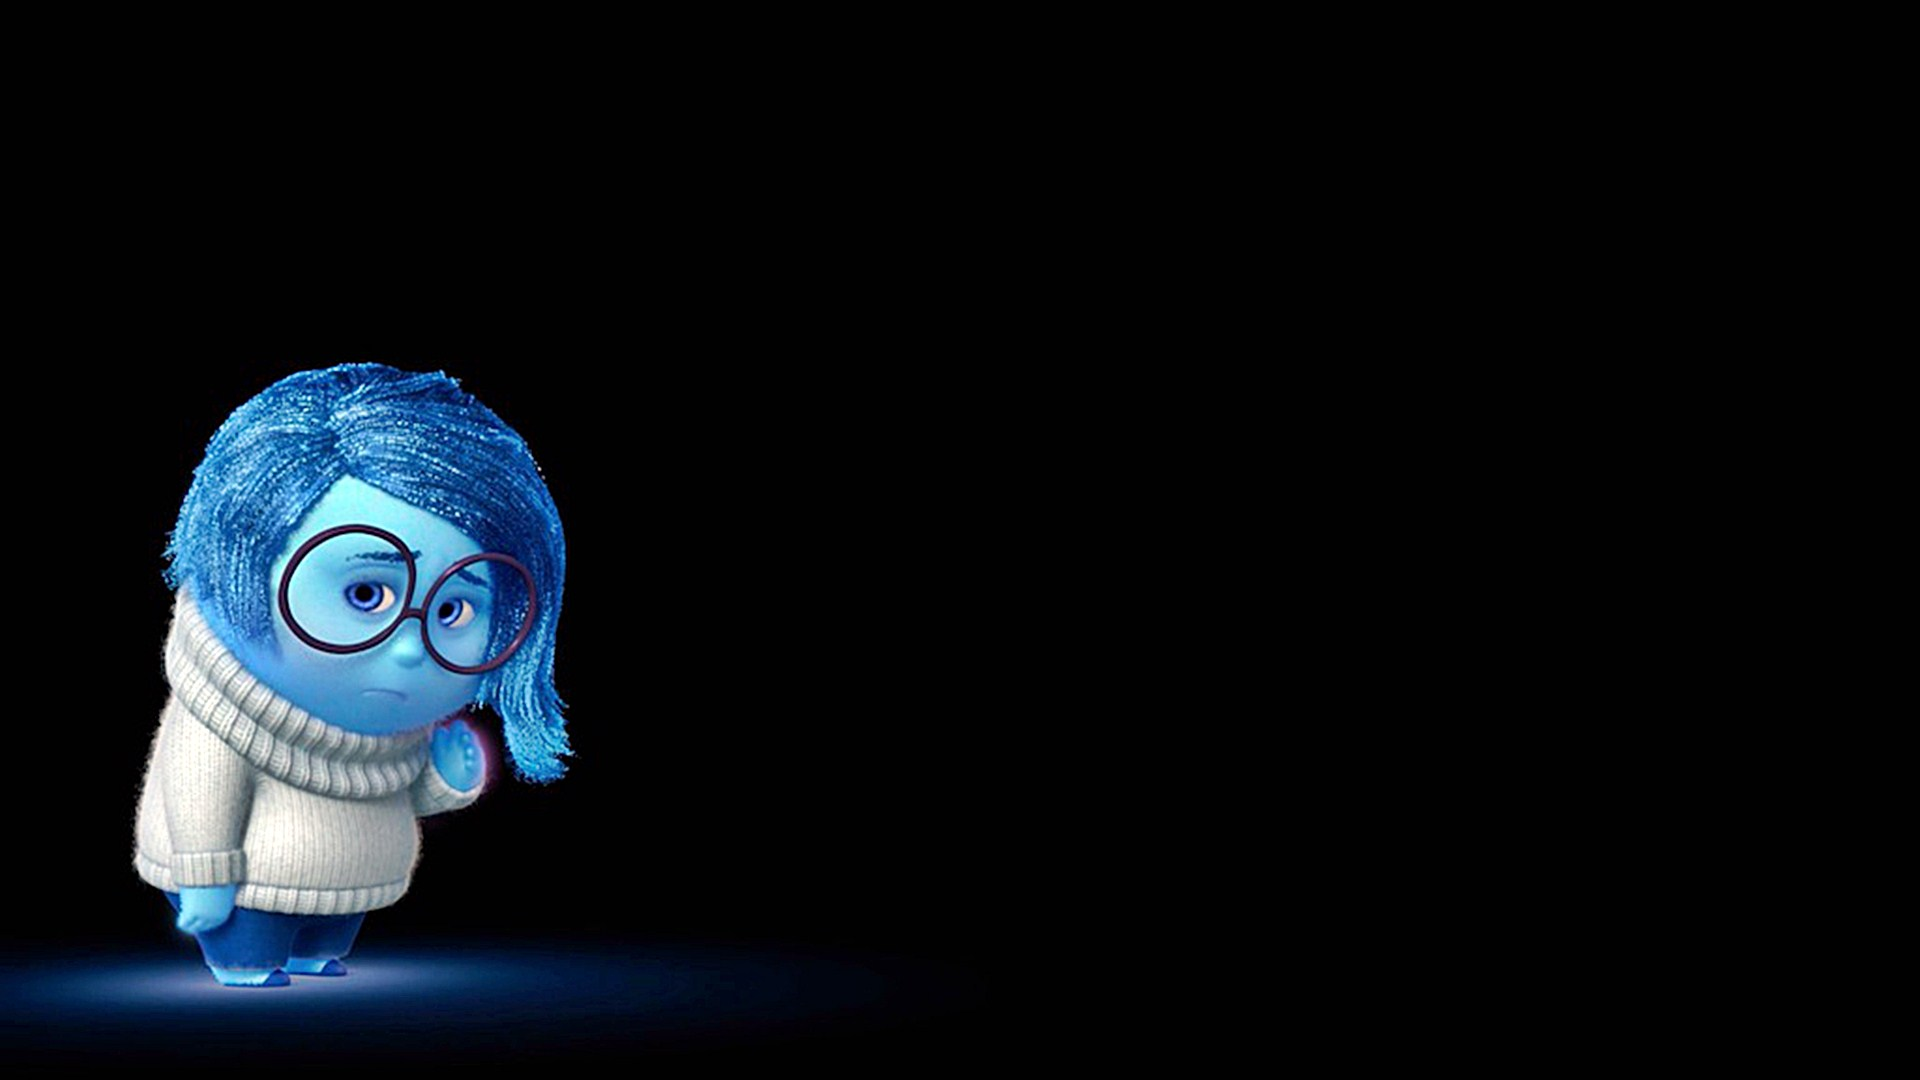 Inside Out Wallpapers High Quality Download 1920x1080